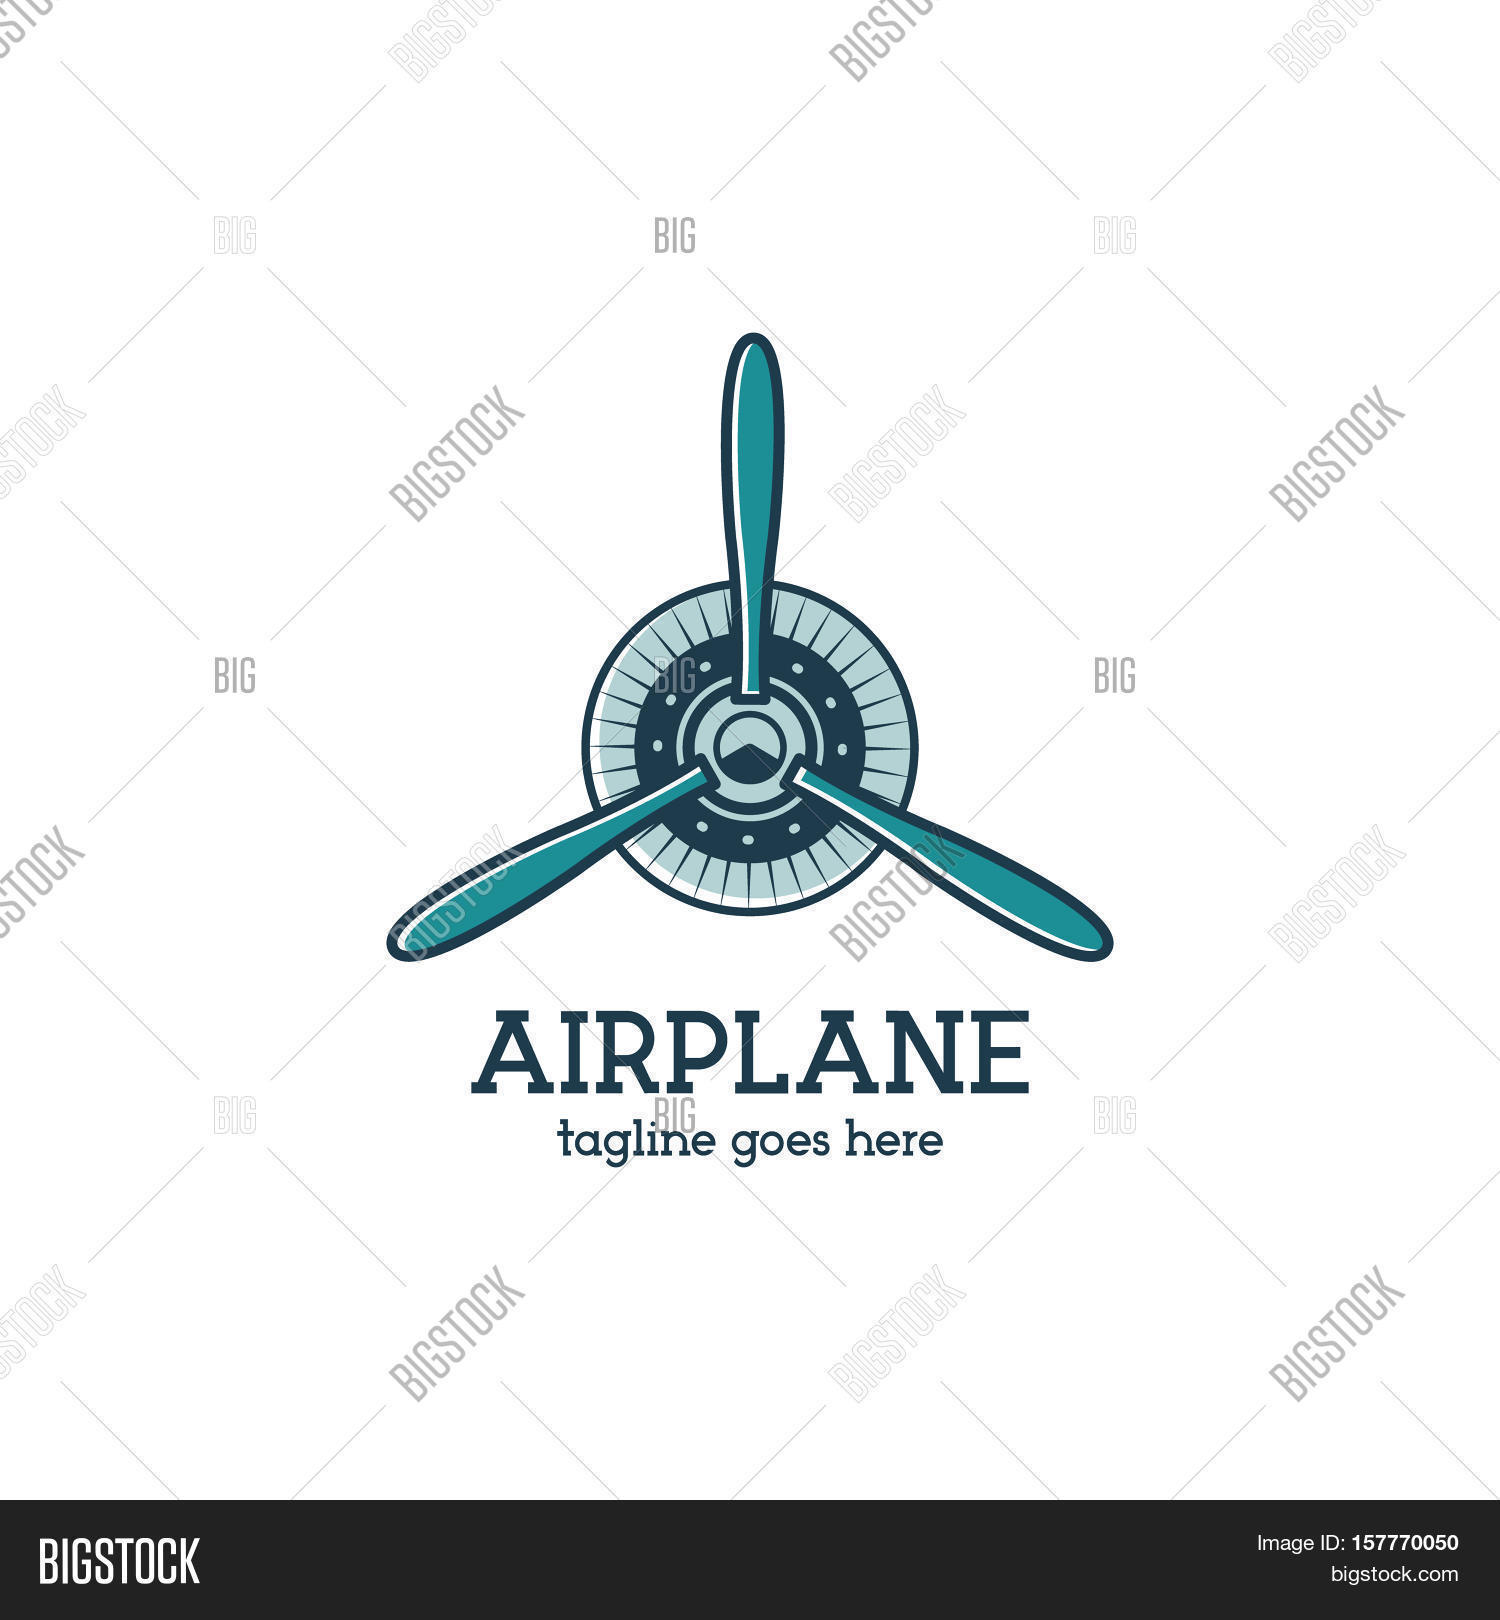 Airplane propeller logo template with radial engine. Retro Plane.